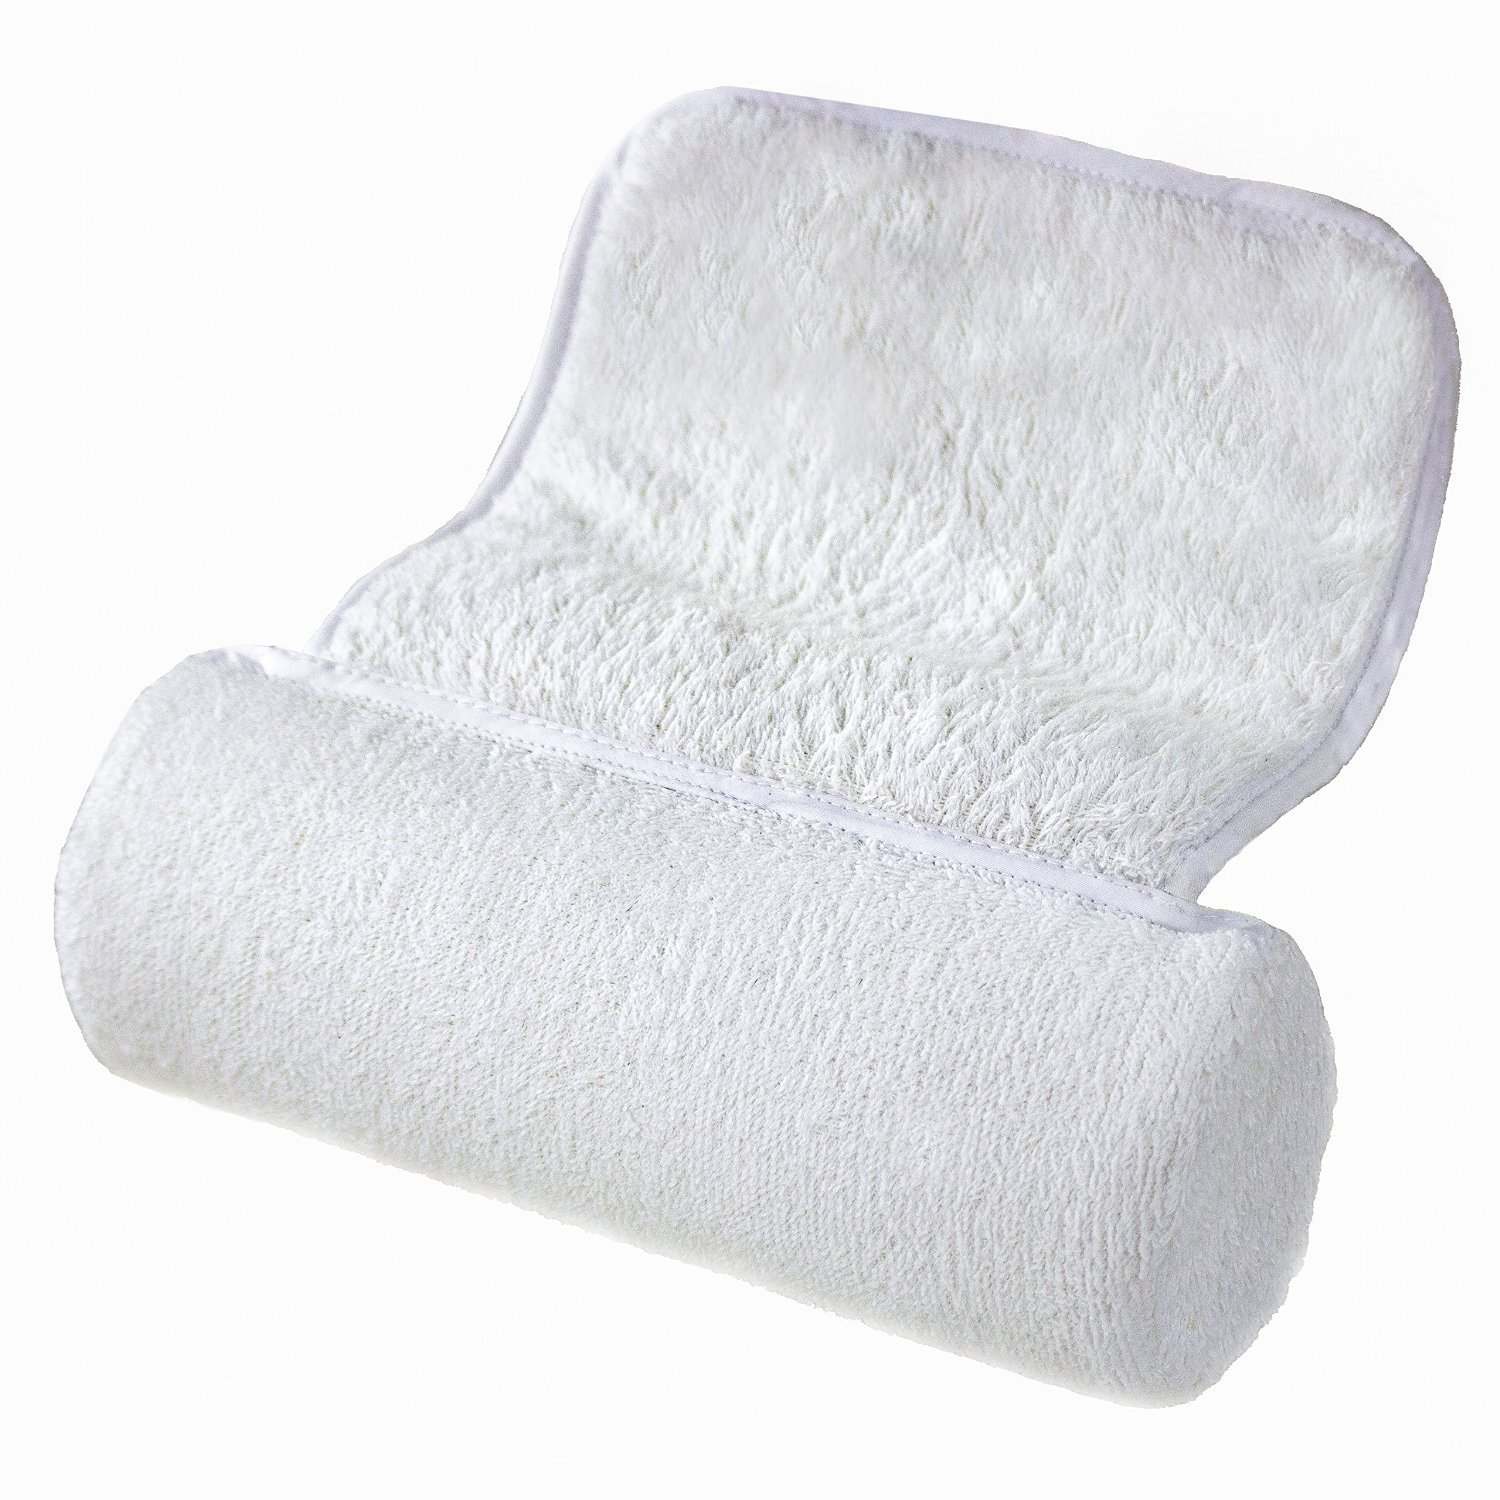 Amazon.com : Luxury Bath Pillow for Bathtub with Ultimate Neck ...